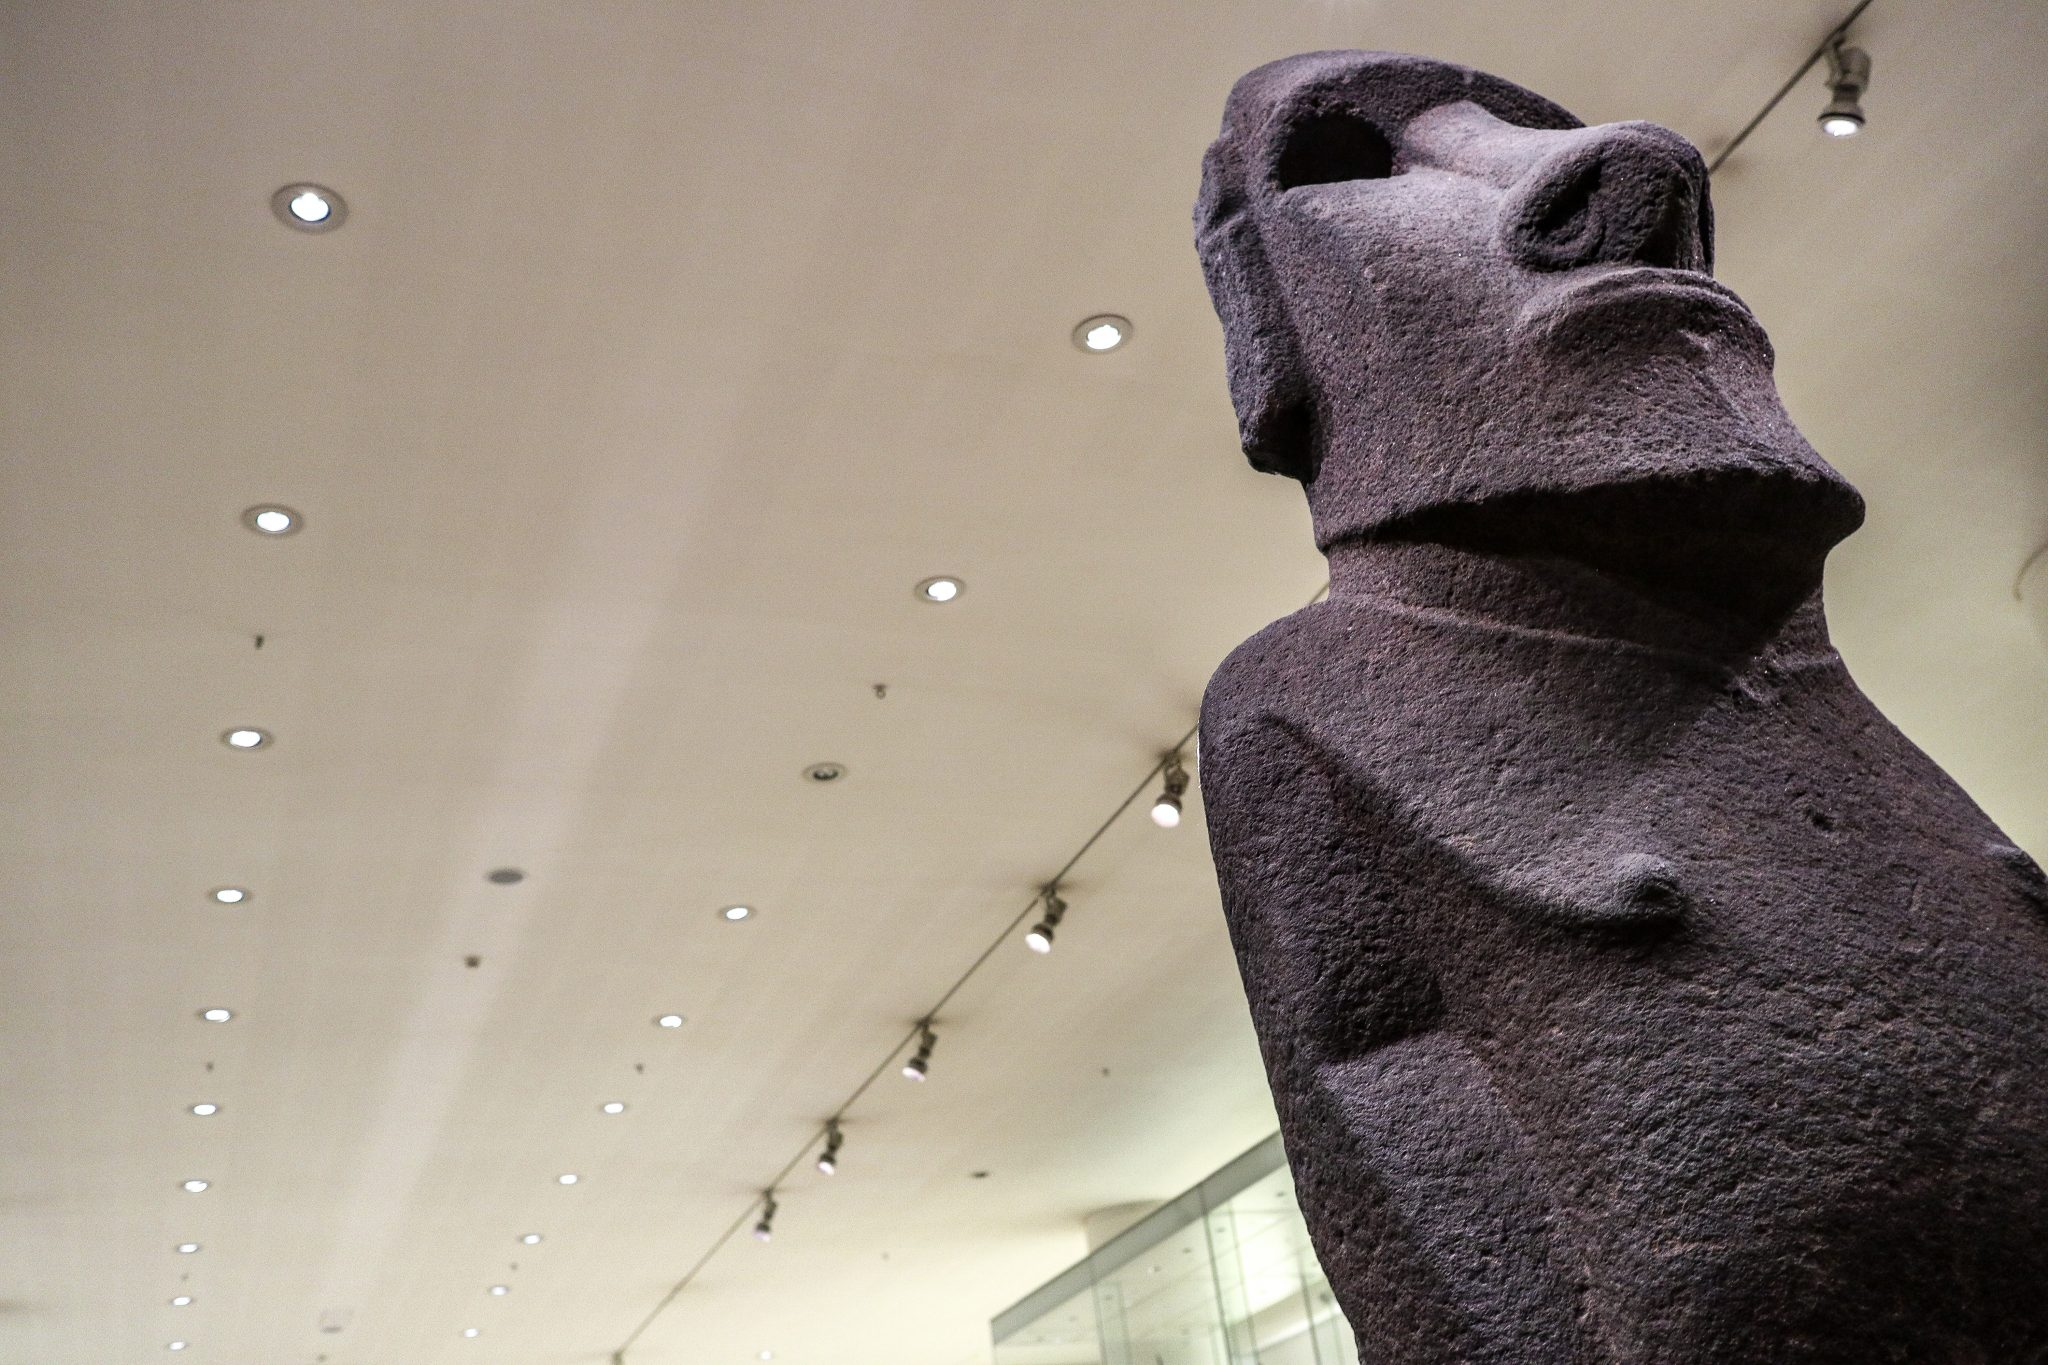 Easter Island Statue at The British Museum, London